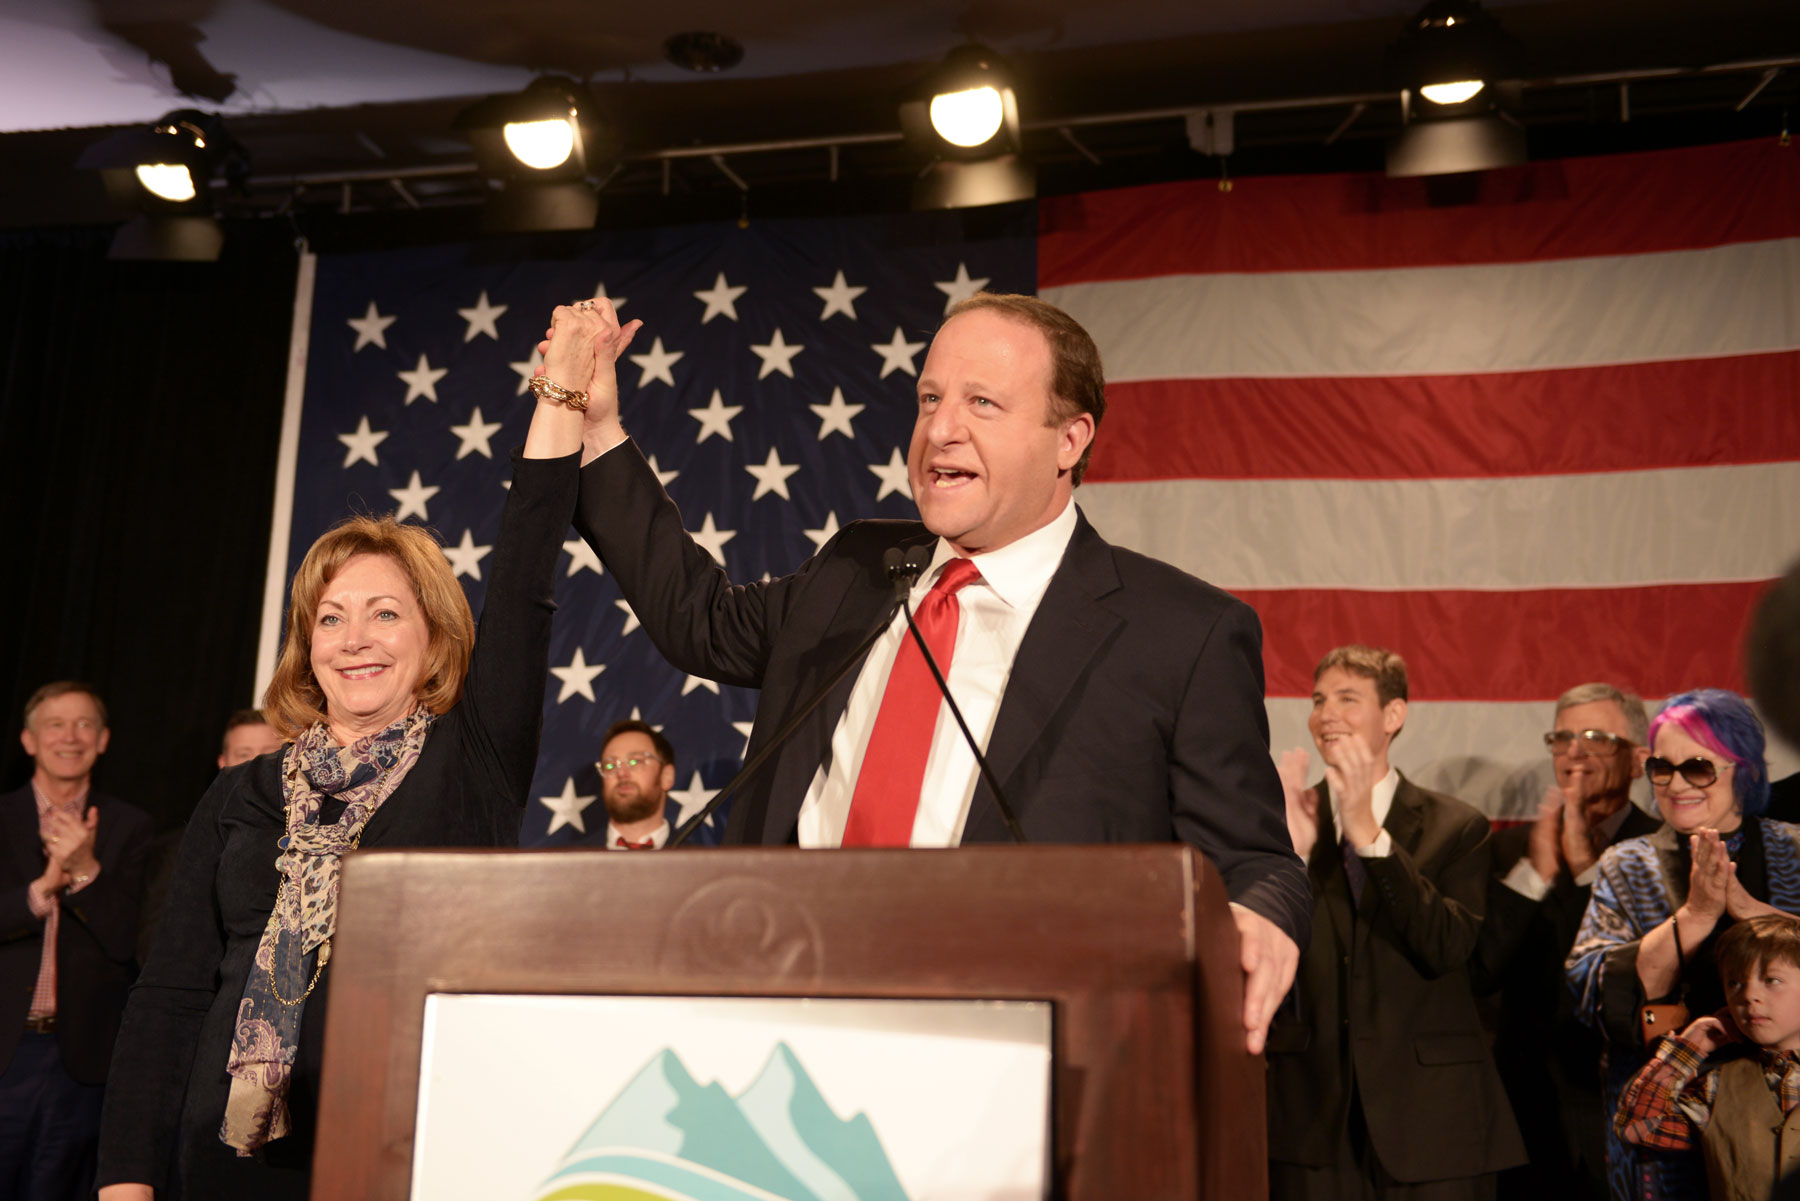 <p>Governor-elect Jared Polis speaks at the Democratic election night party on Tuesday, Nov. 6, 2018.</p>